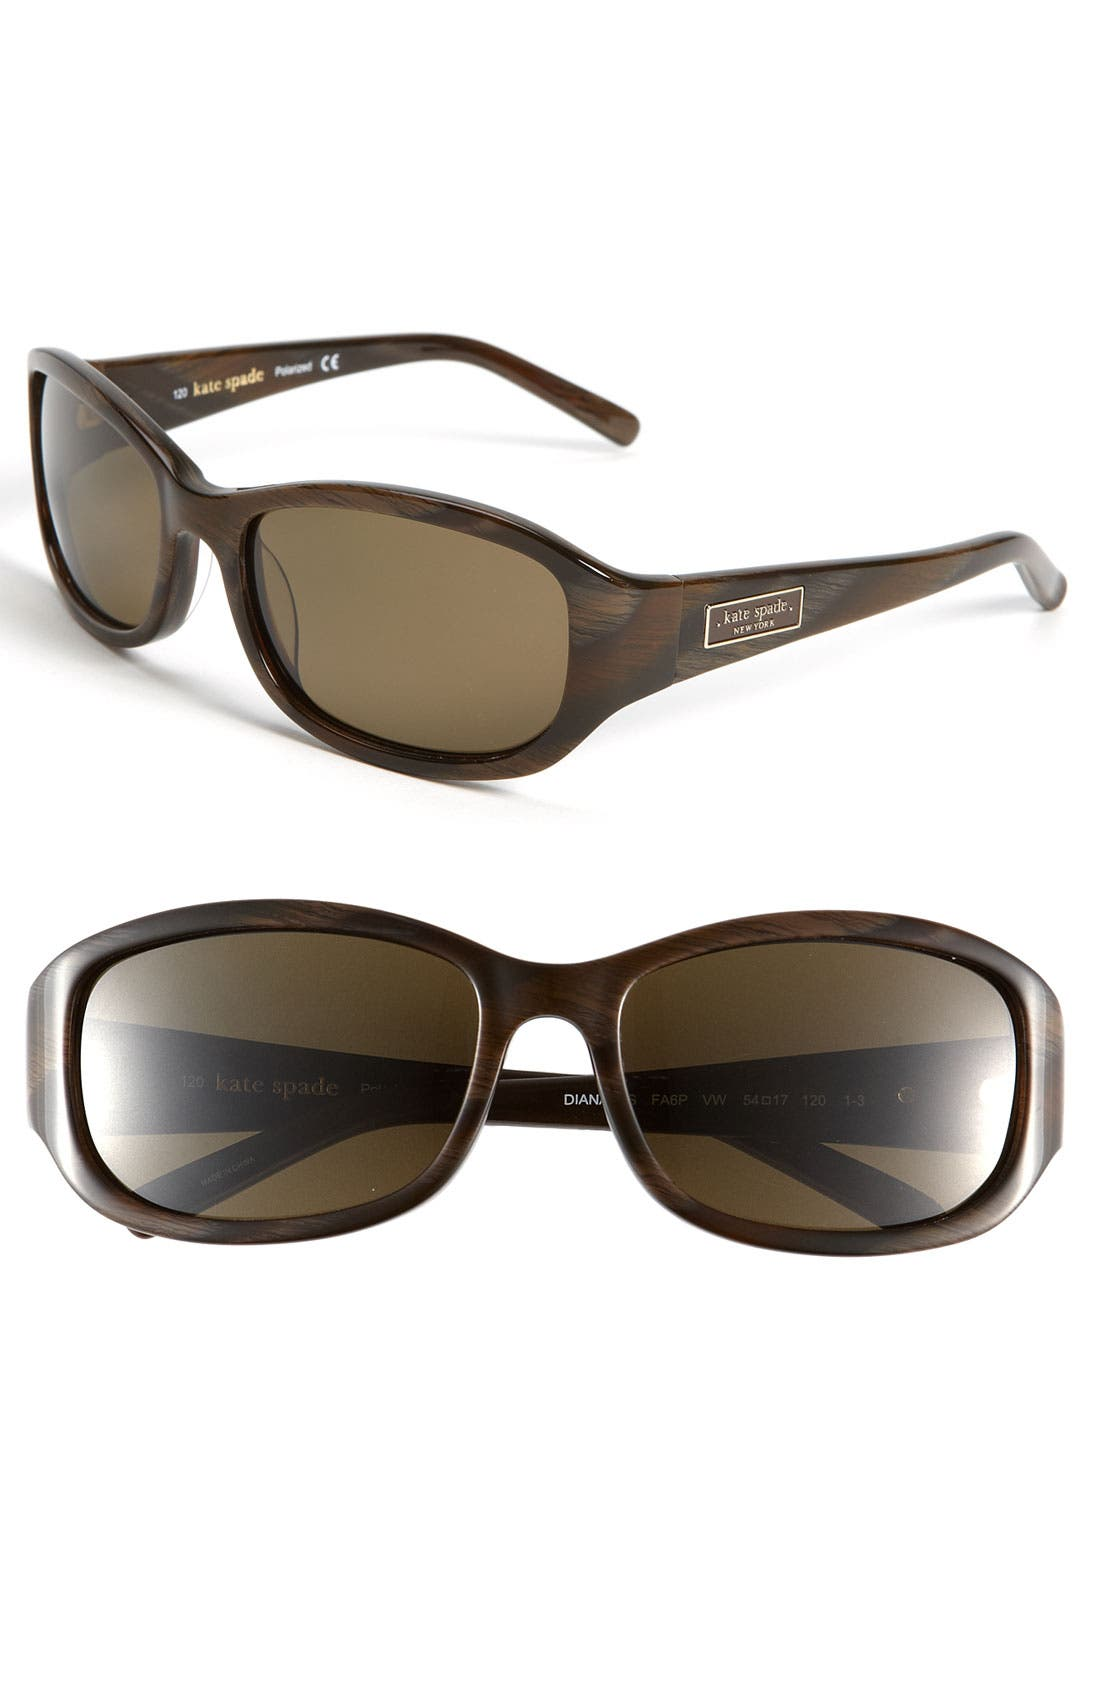 Alternate Image 1 Selected - kate spade new york 'diana' 54mm polarized sunglasses